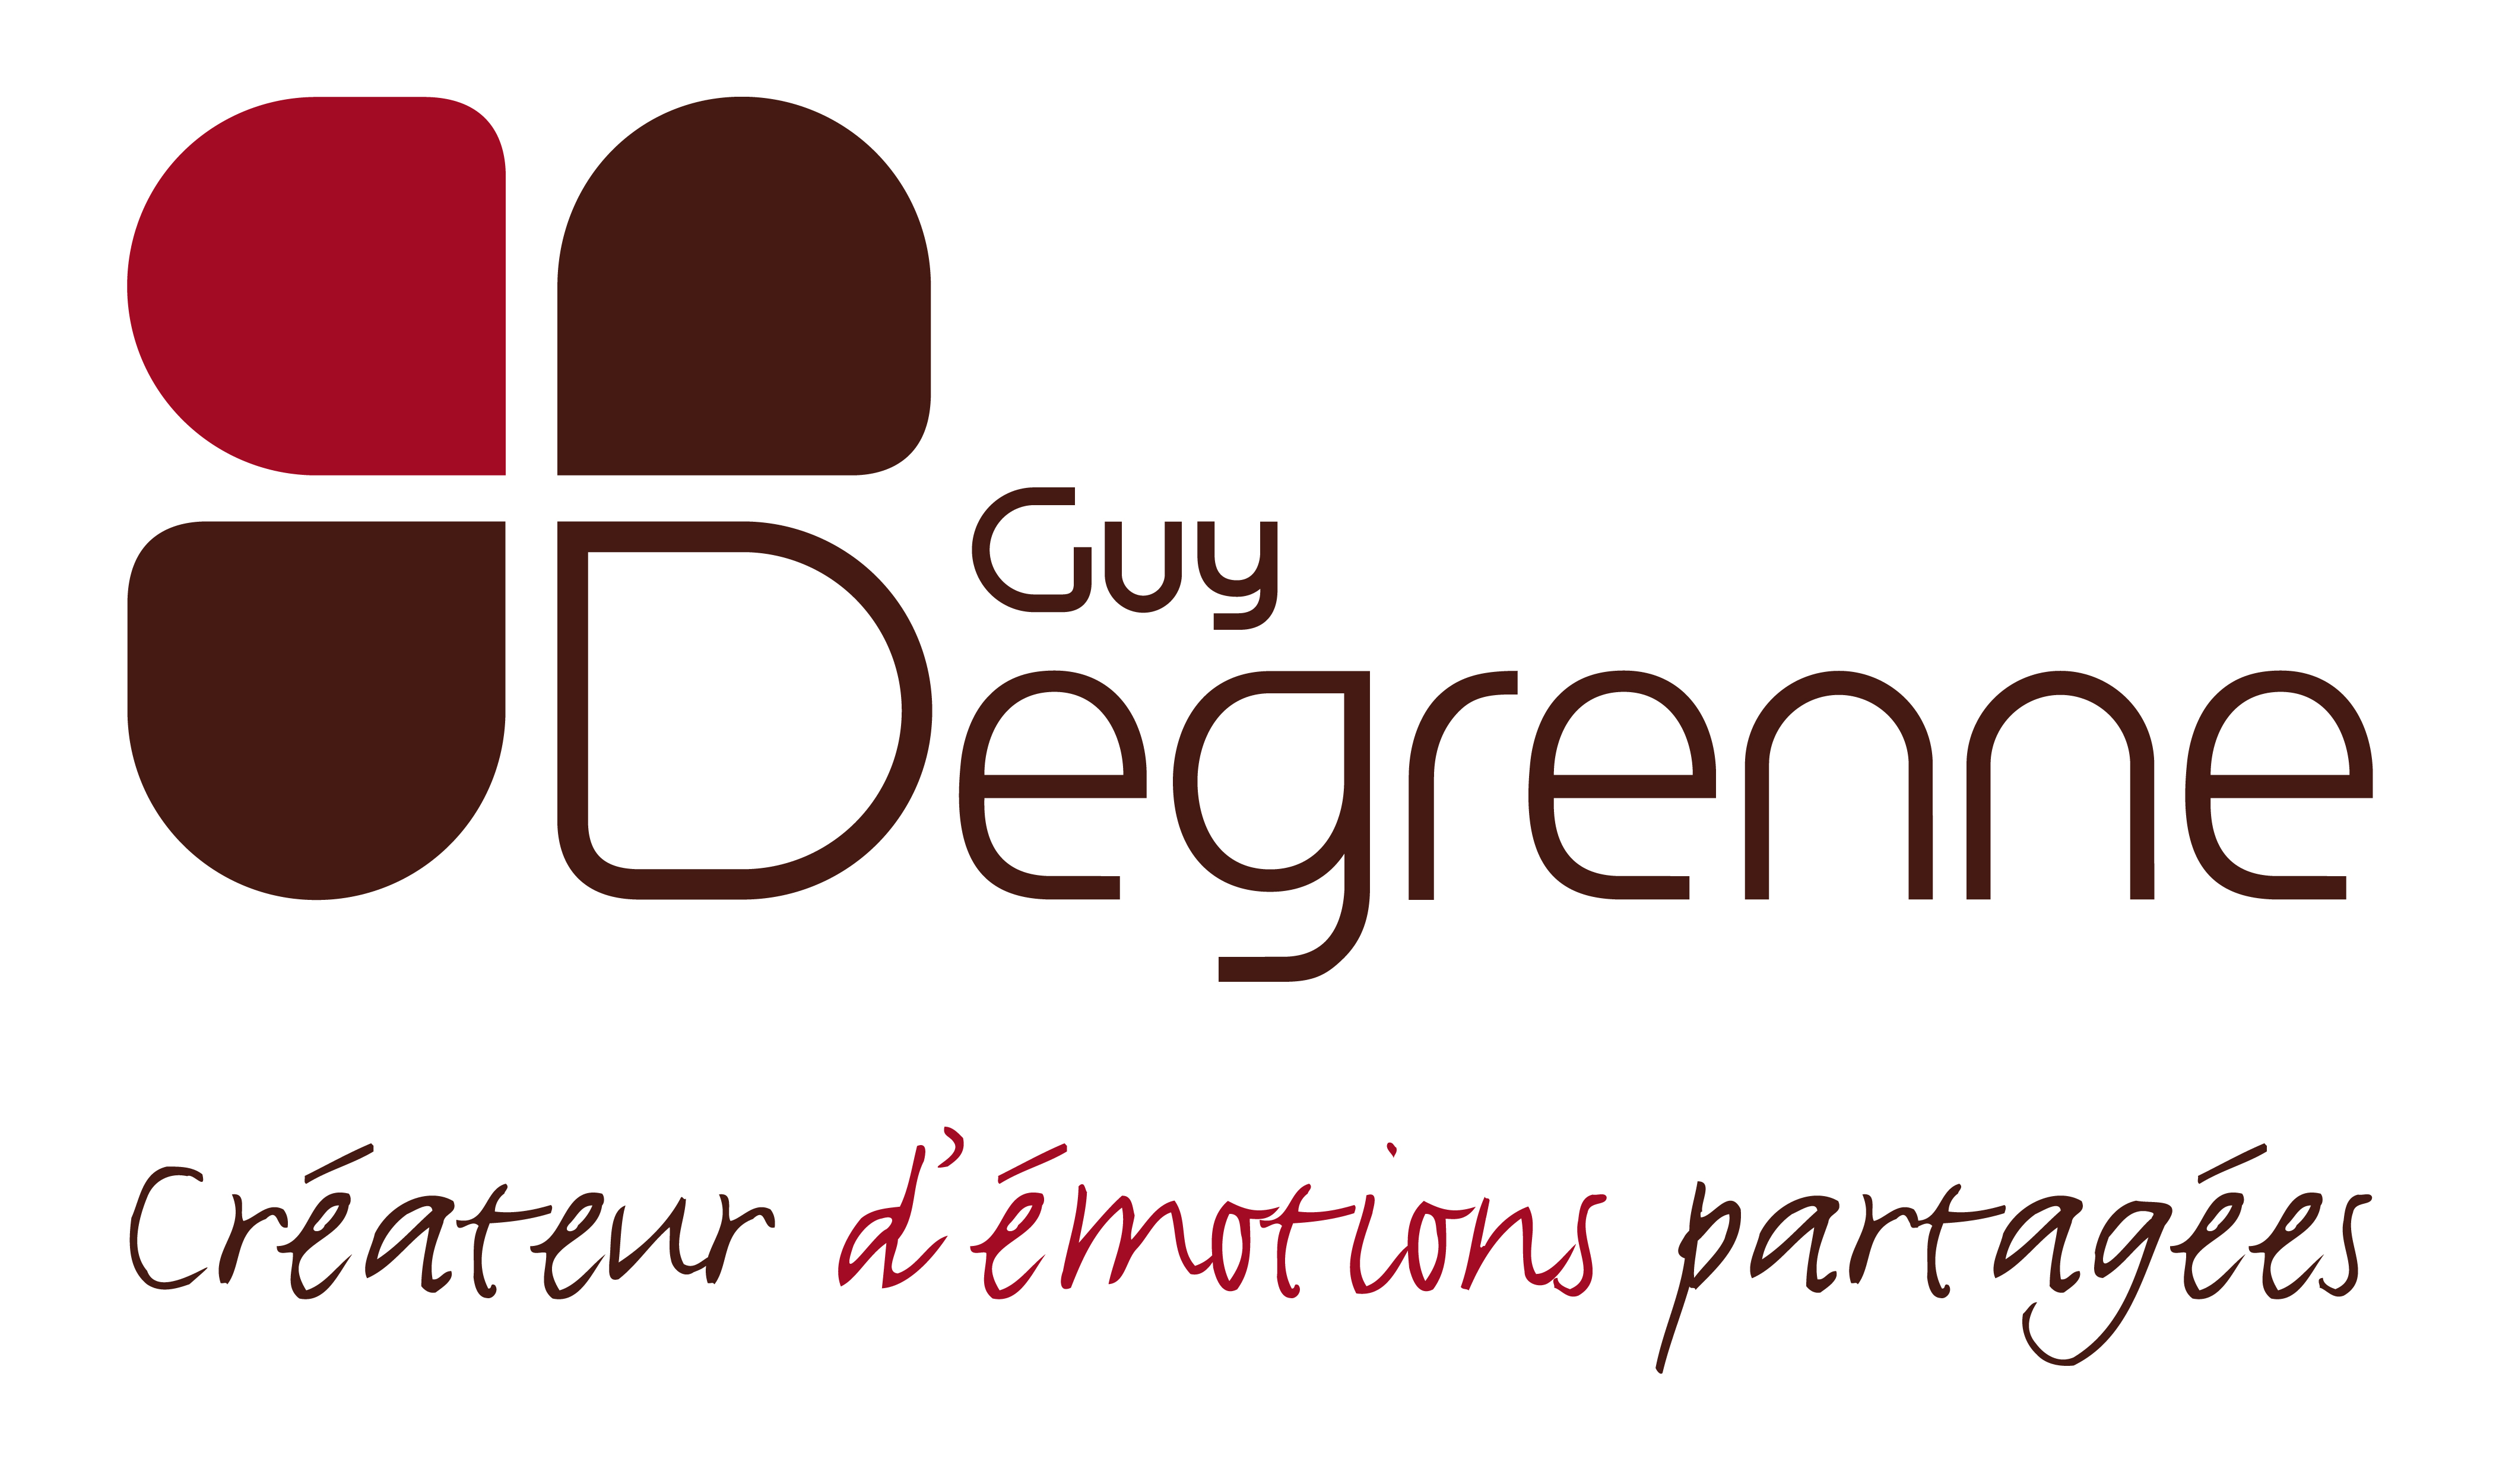 Guy Degrenne.